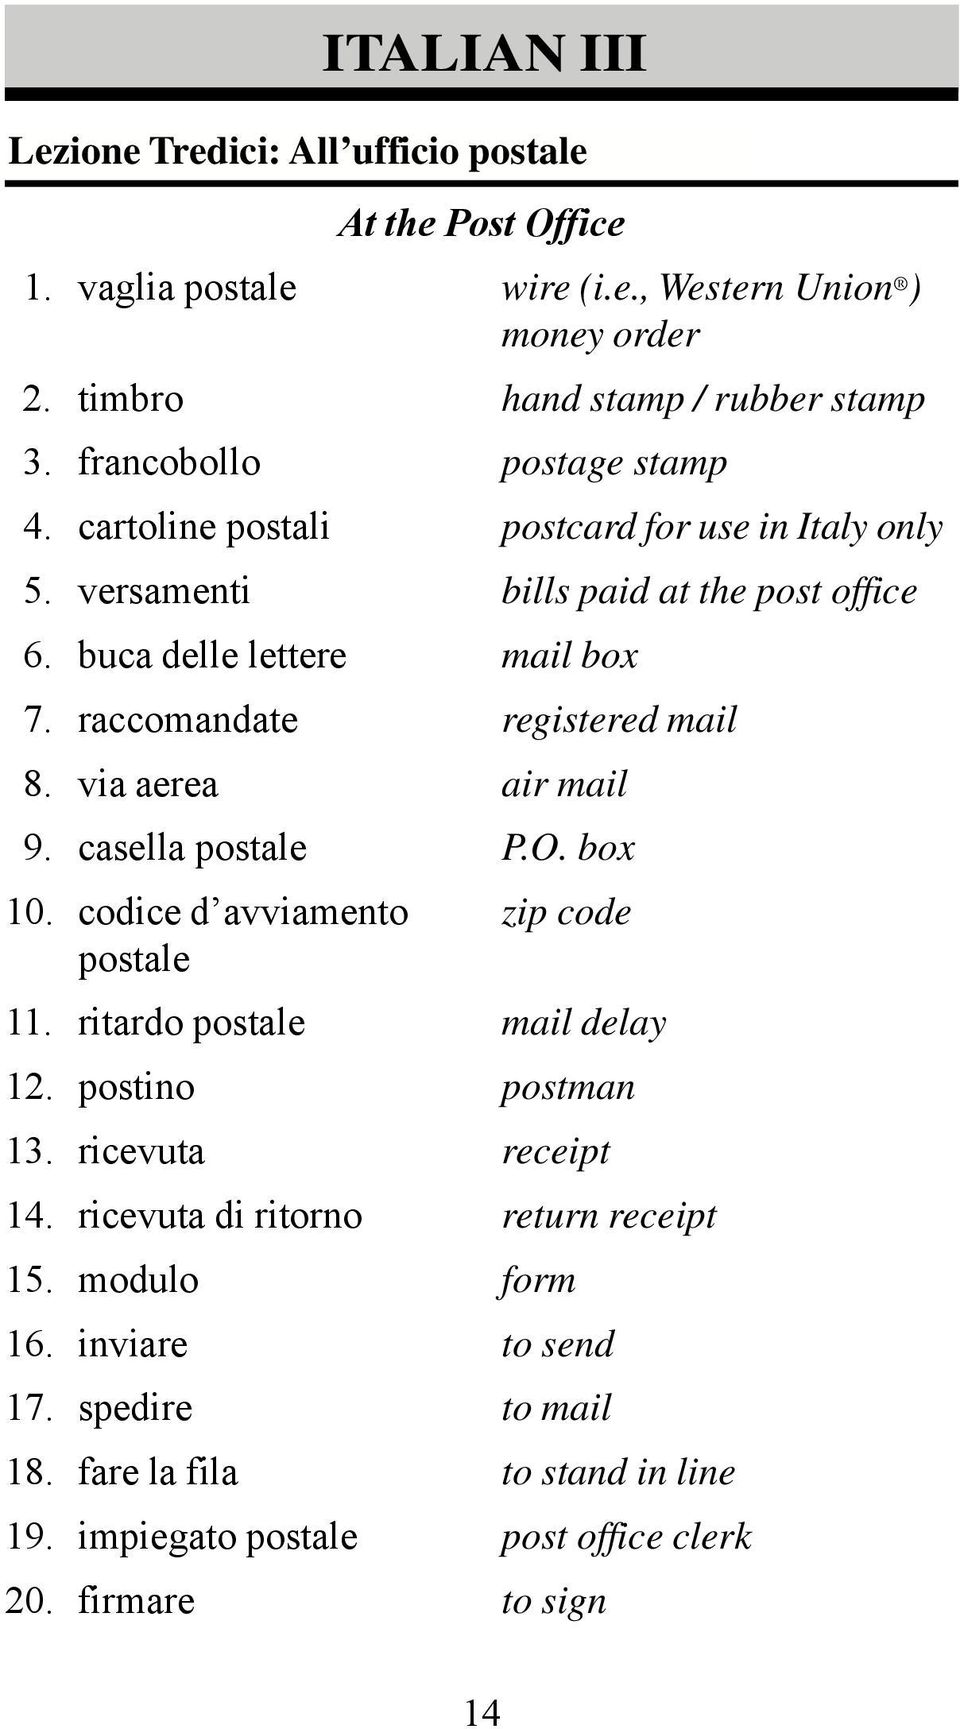 raccomandate registered mail 8. via aerea air mail 9. casella postale P.O. box 10. codice d avviamento zip code postale 11. ritardo postale mail delay 12.